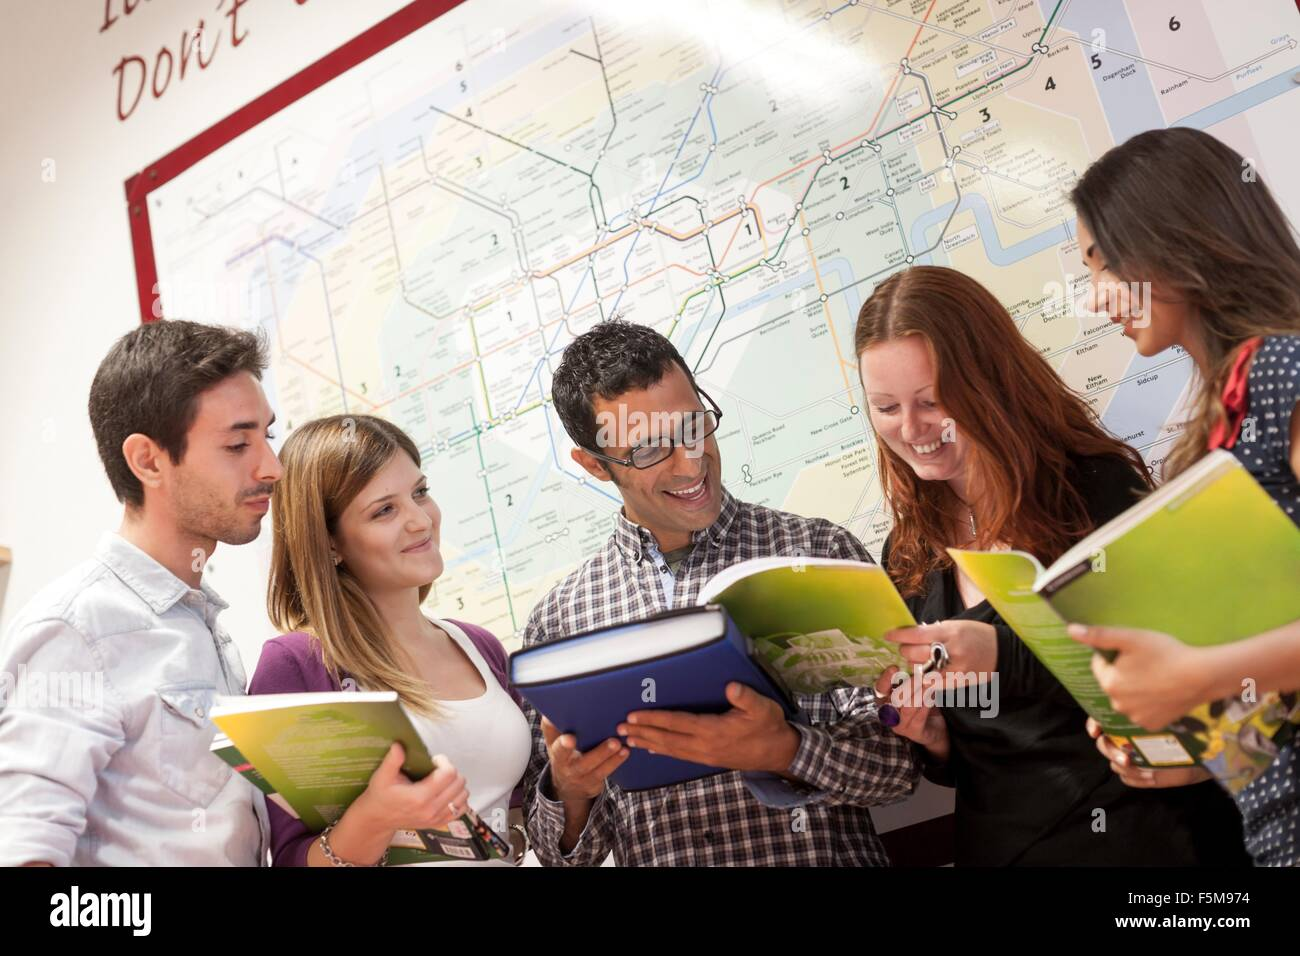 Small group of people, looking through study books - Stock Image